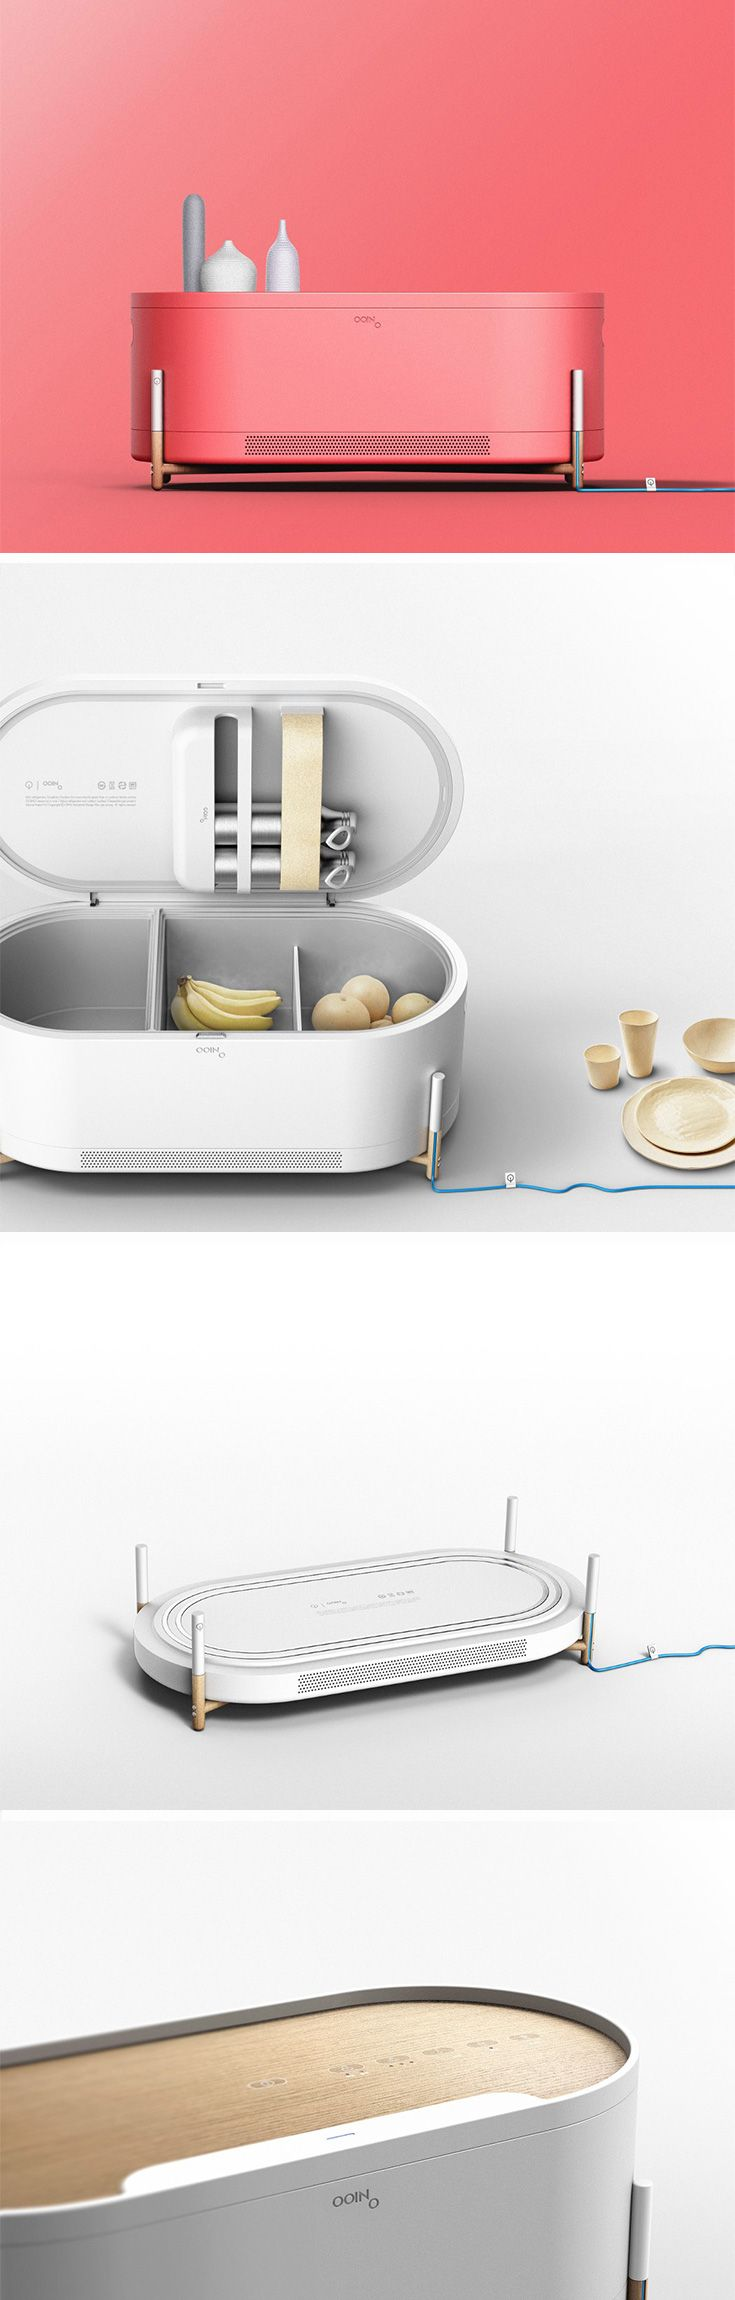 As opposed to most fridges today the Ooino has a horizontal layout.